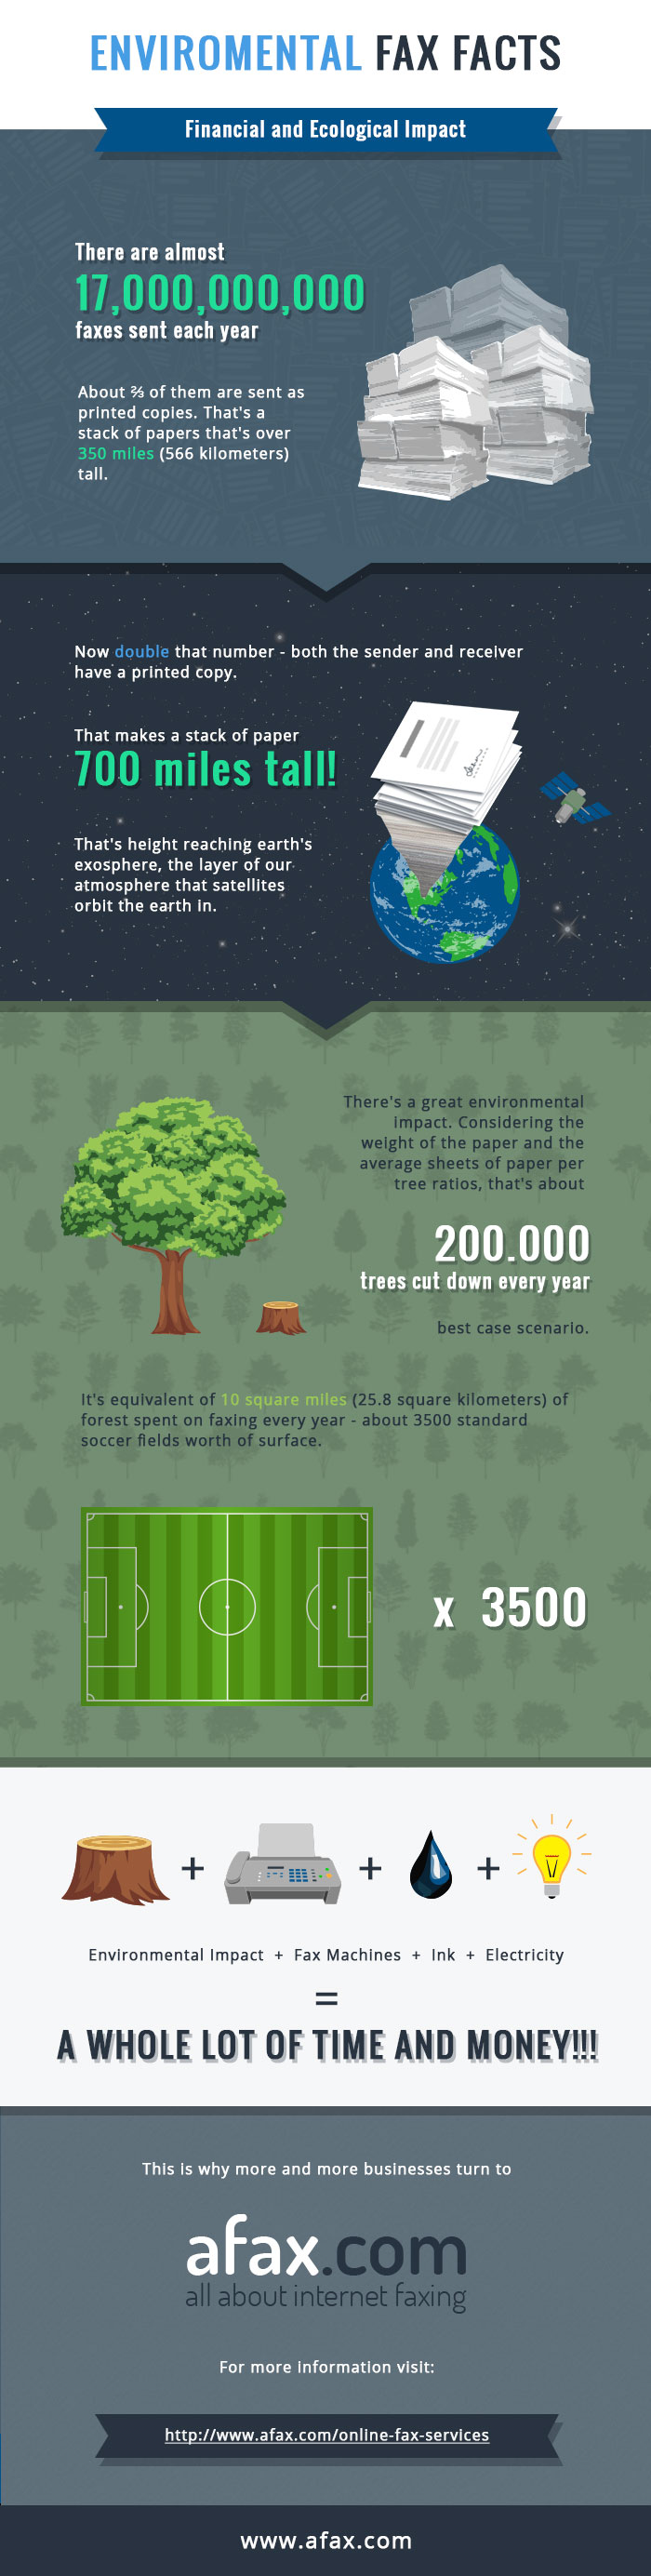 Infographic Environmental Impact of Faxing